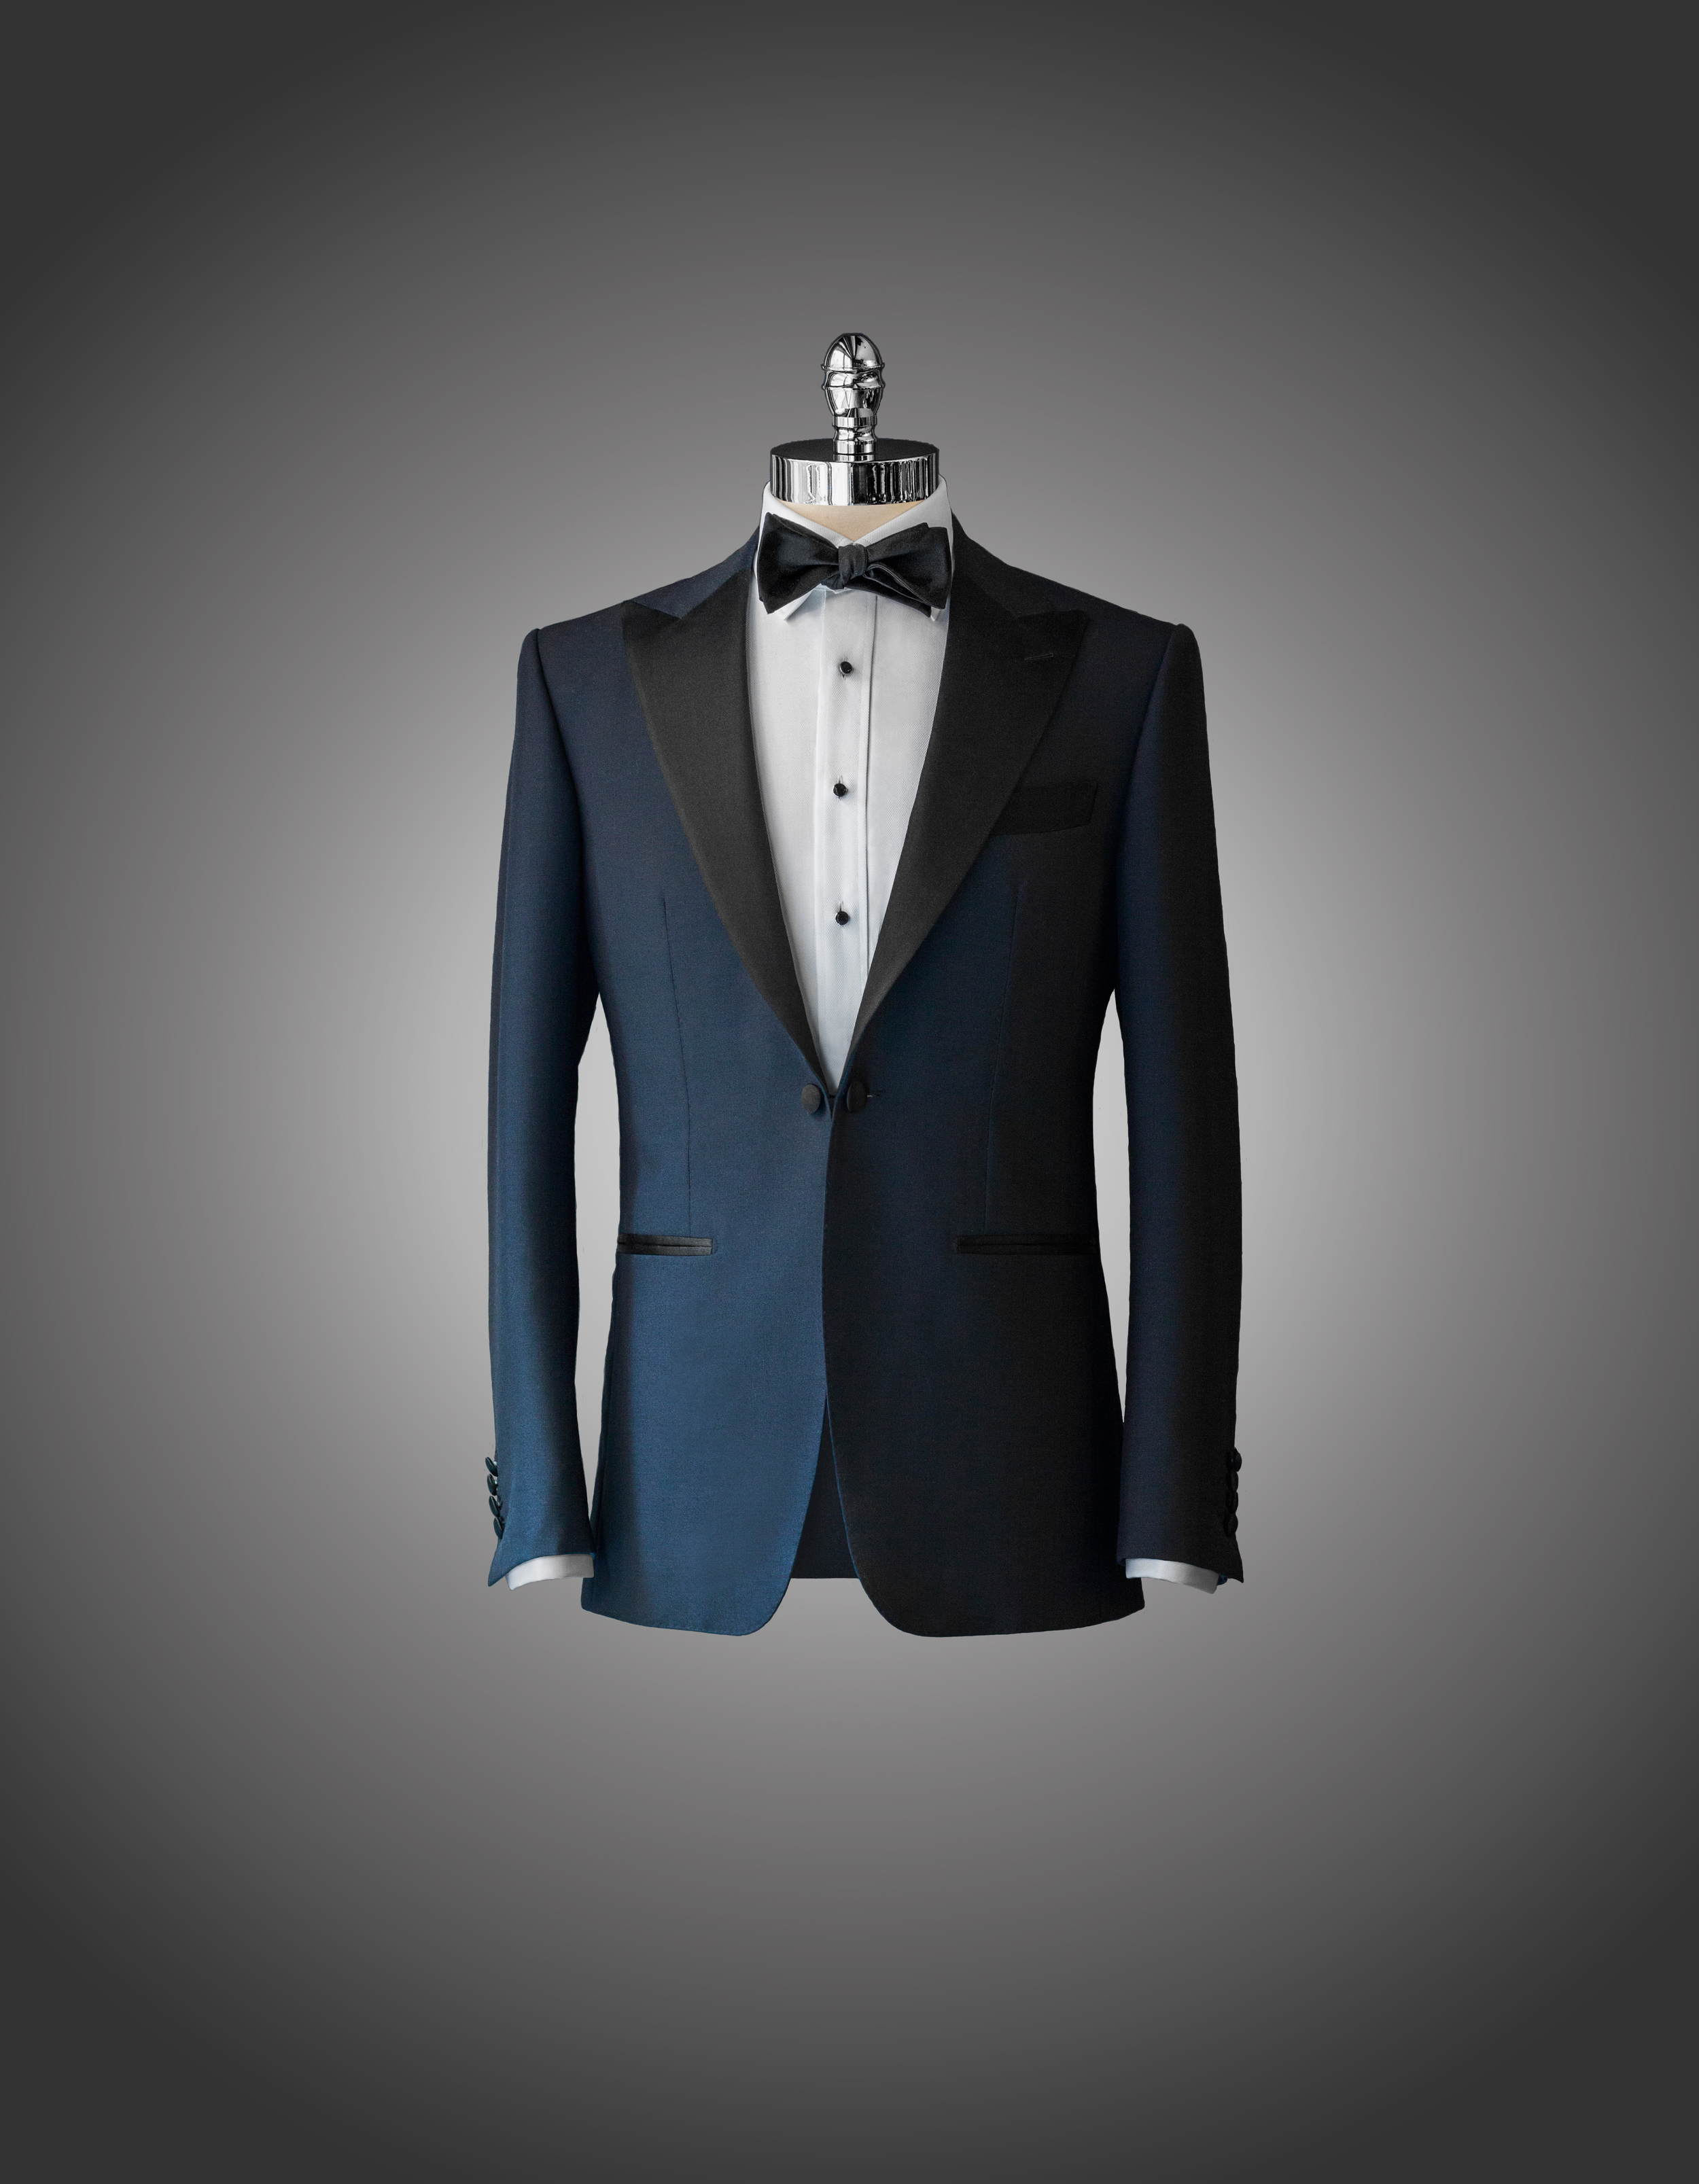 Michael Andrews Bespoke  knows a thing or two about  Tuxedos